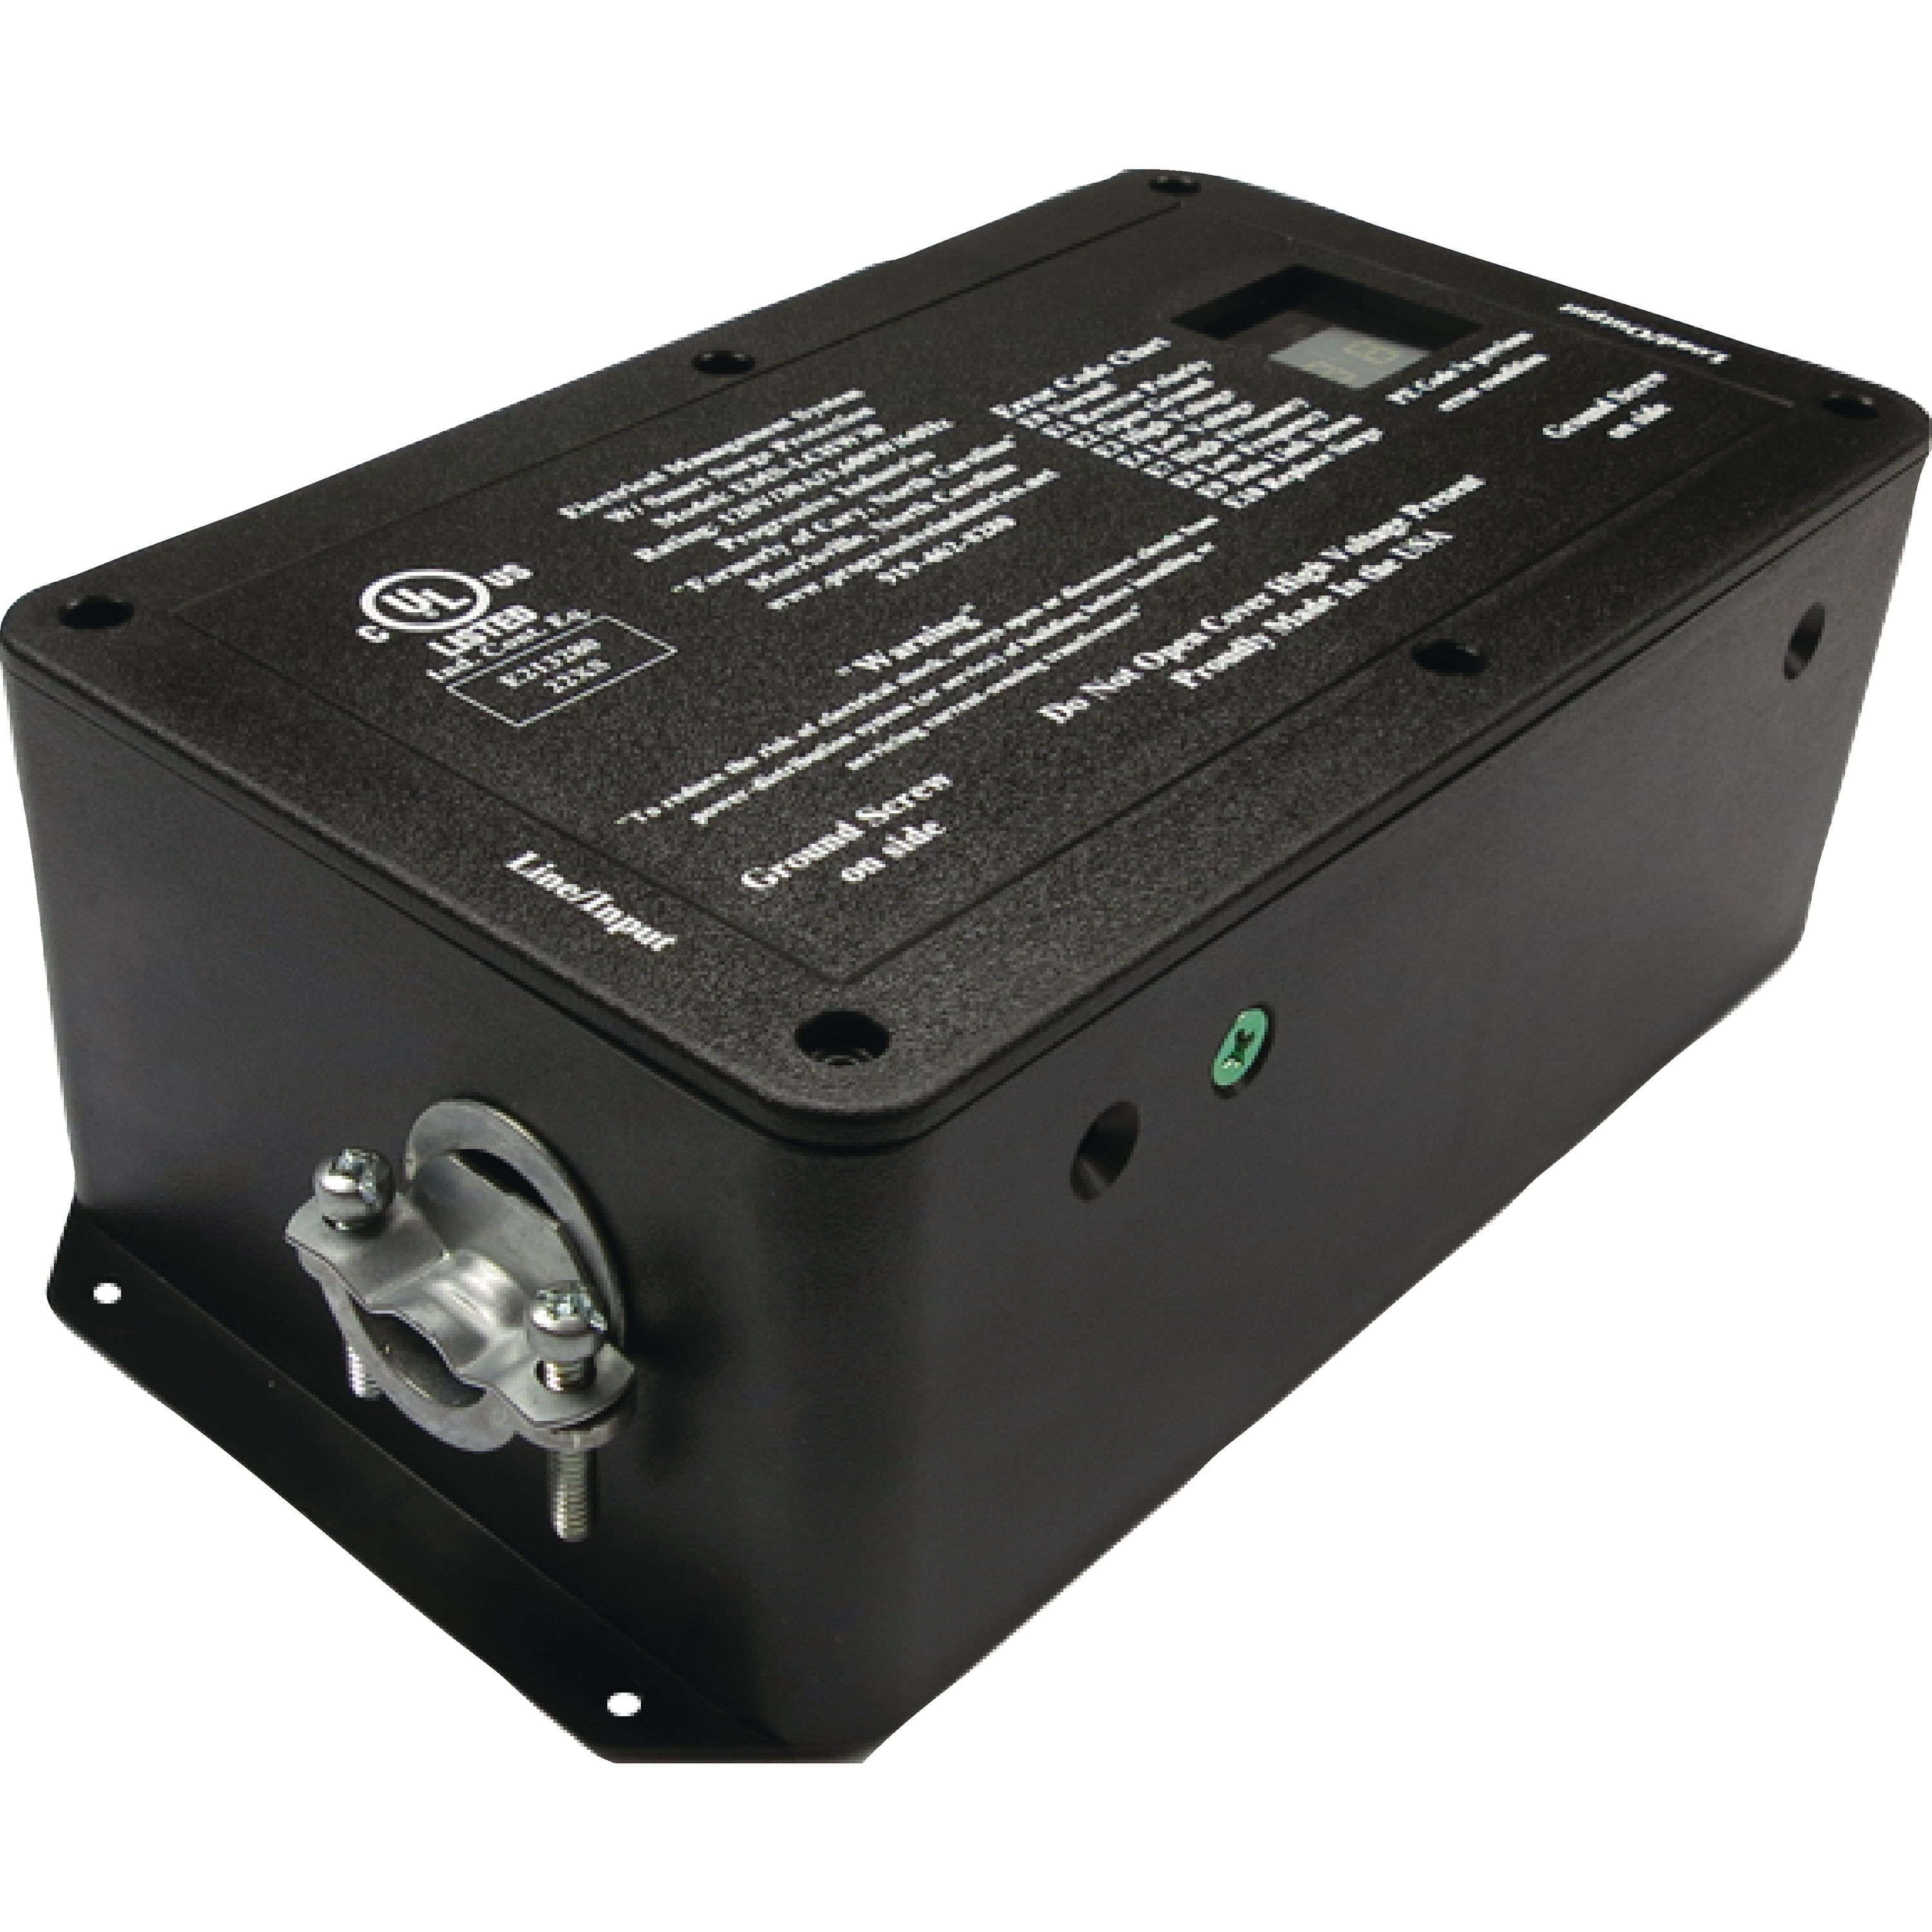 Progressive Industries EMSLCHW30 30A 120V Hardwired RV Surge & Electrical Protector with Integrated Display